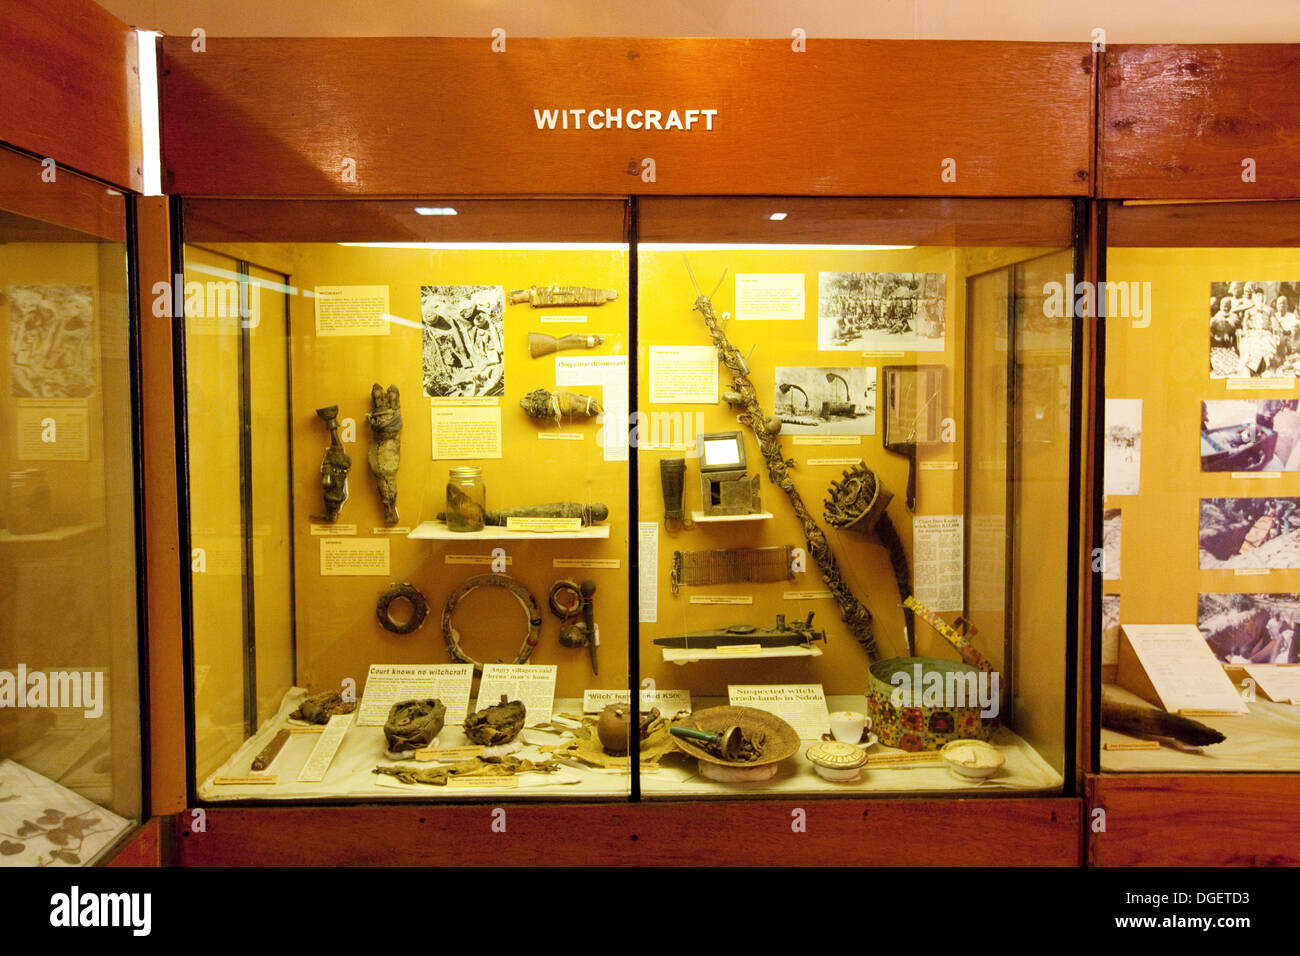 A display on Witchcraft, Livingstone Museum, Zambia, Africa - Stock Image